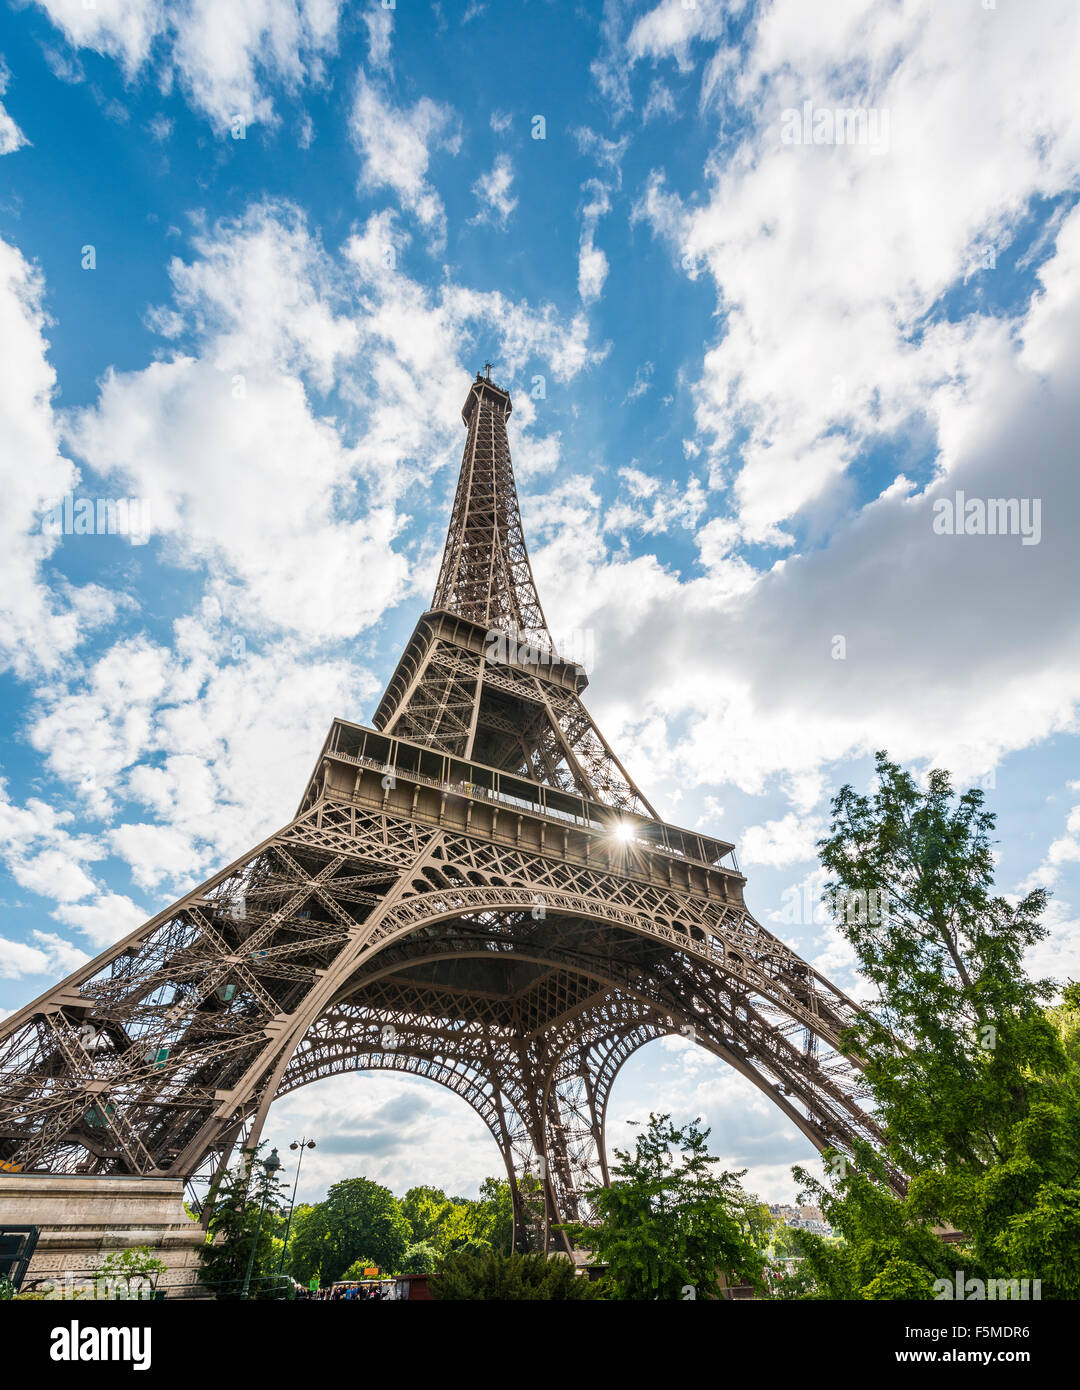 Eiffel Tower, tour Eiffel, Paris, Ile-de-France, France - Stock Image